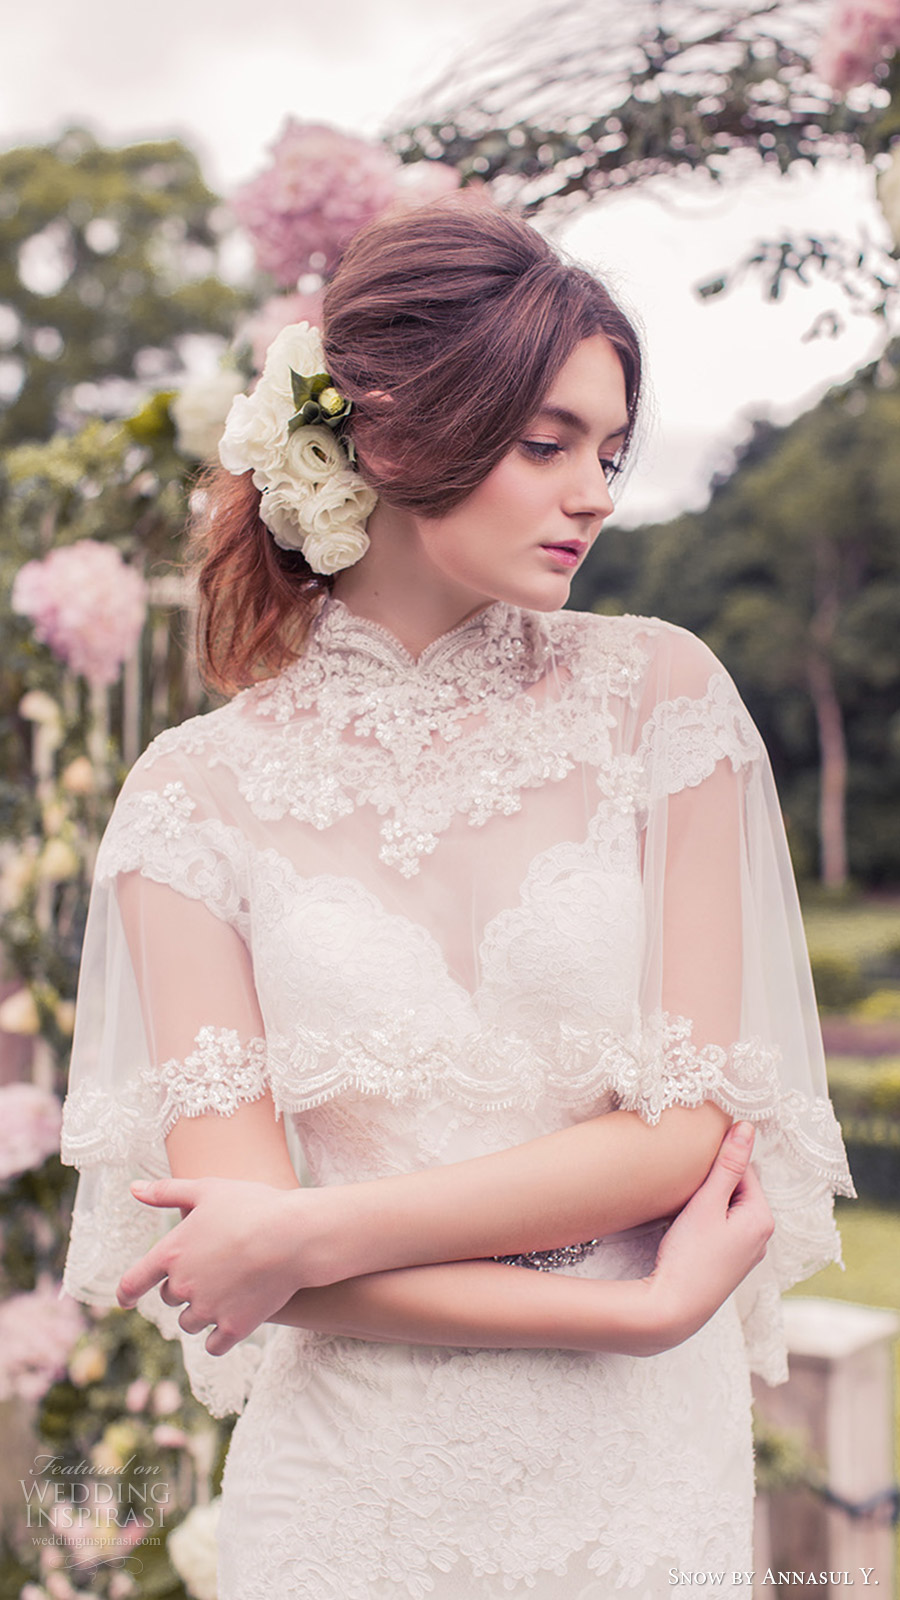 snow annasul y 2017 bridal (sa3265b with cape) cap sleeves illusion bateau neck sweetheart trumpet lace wedding dress zv high neck sheer capelet